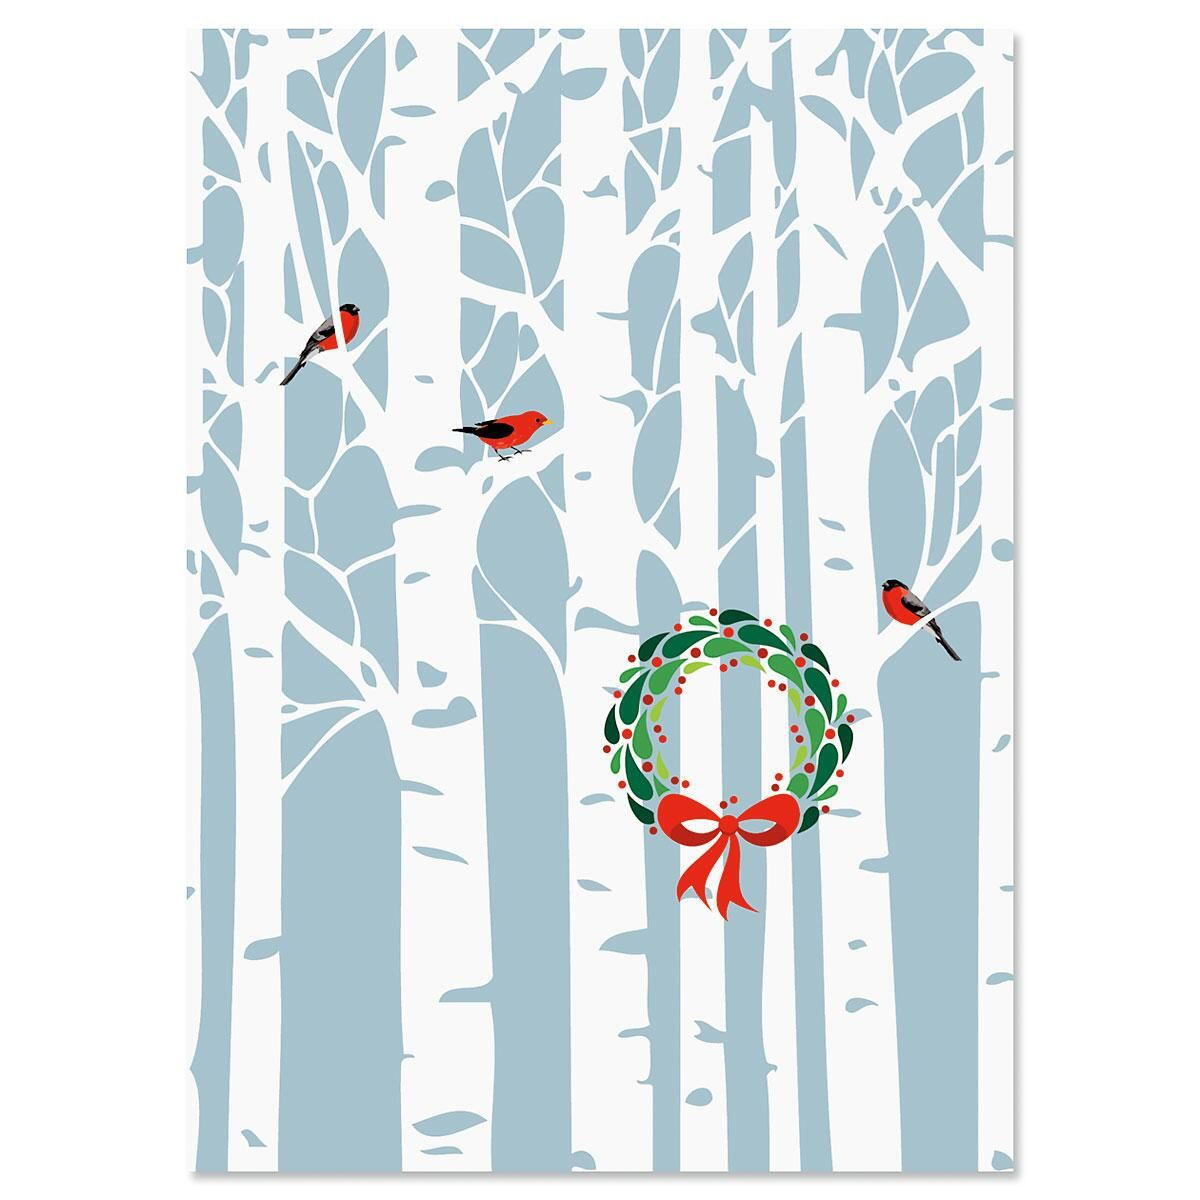 Aspens with Wreath Nonpersonalized Christmas Cards - Set of 18